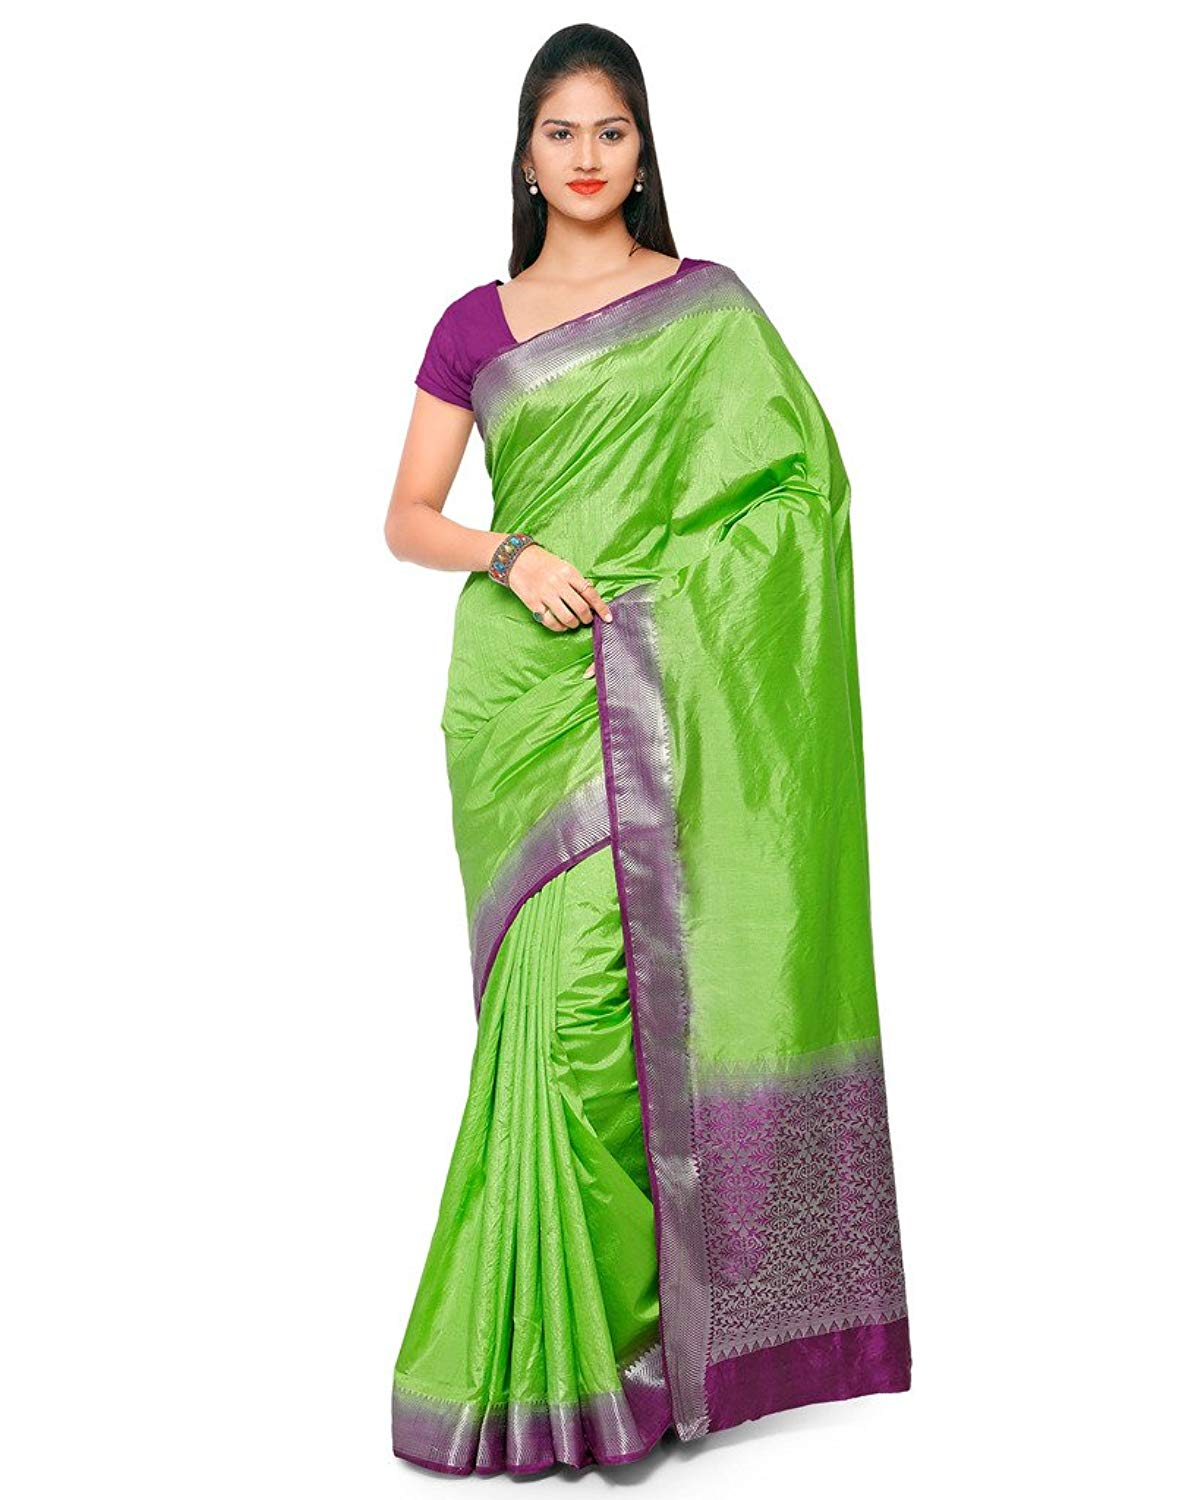 Varkala 100% Raw Silk Sarees with Blouse Piece- Amazon